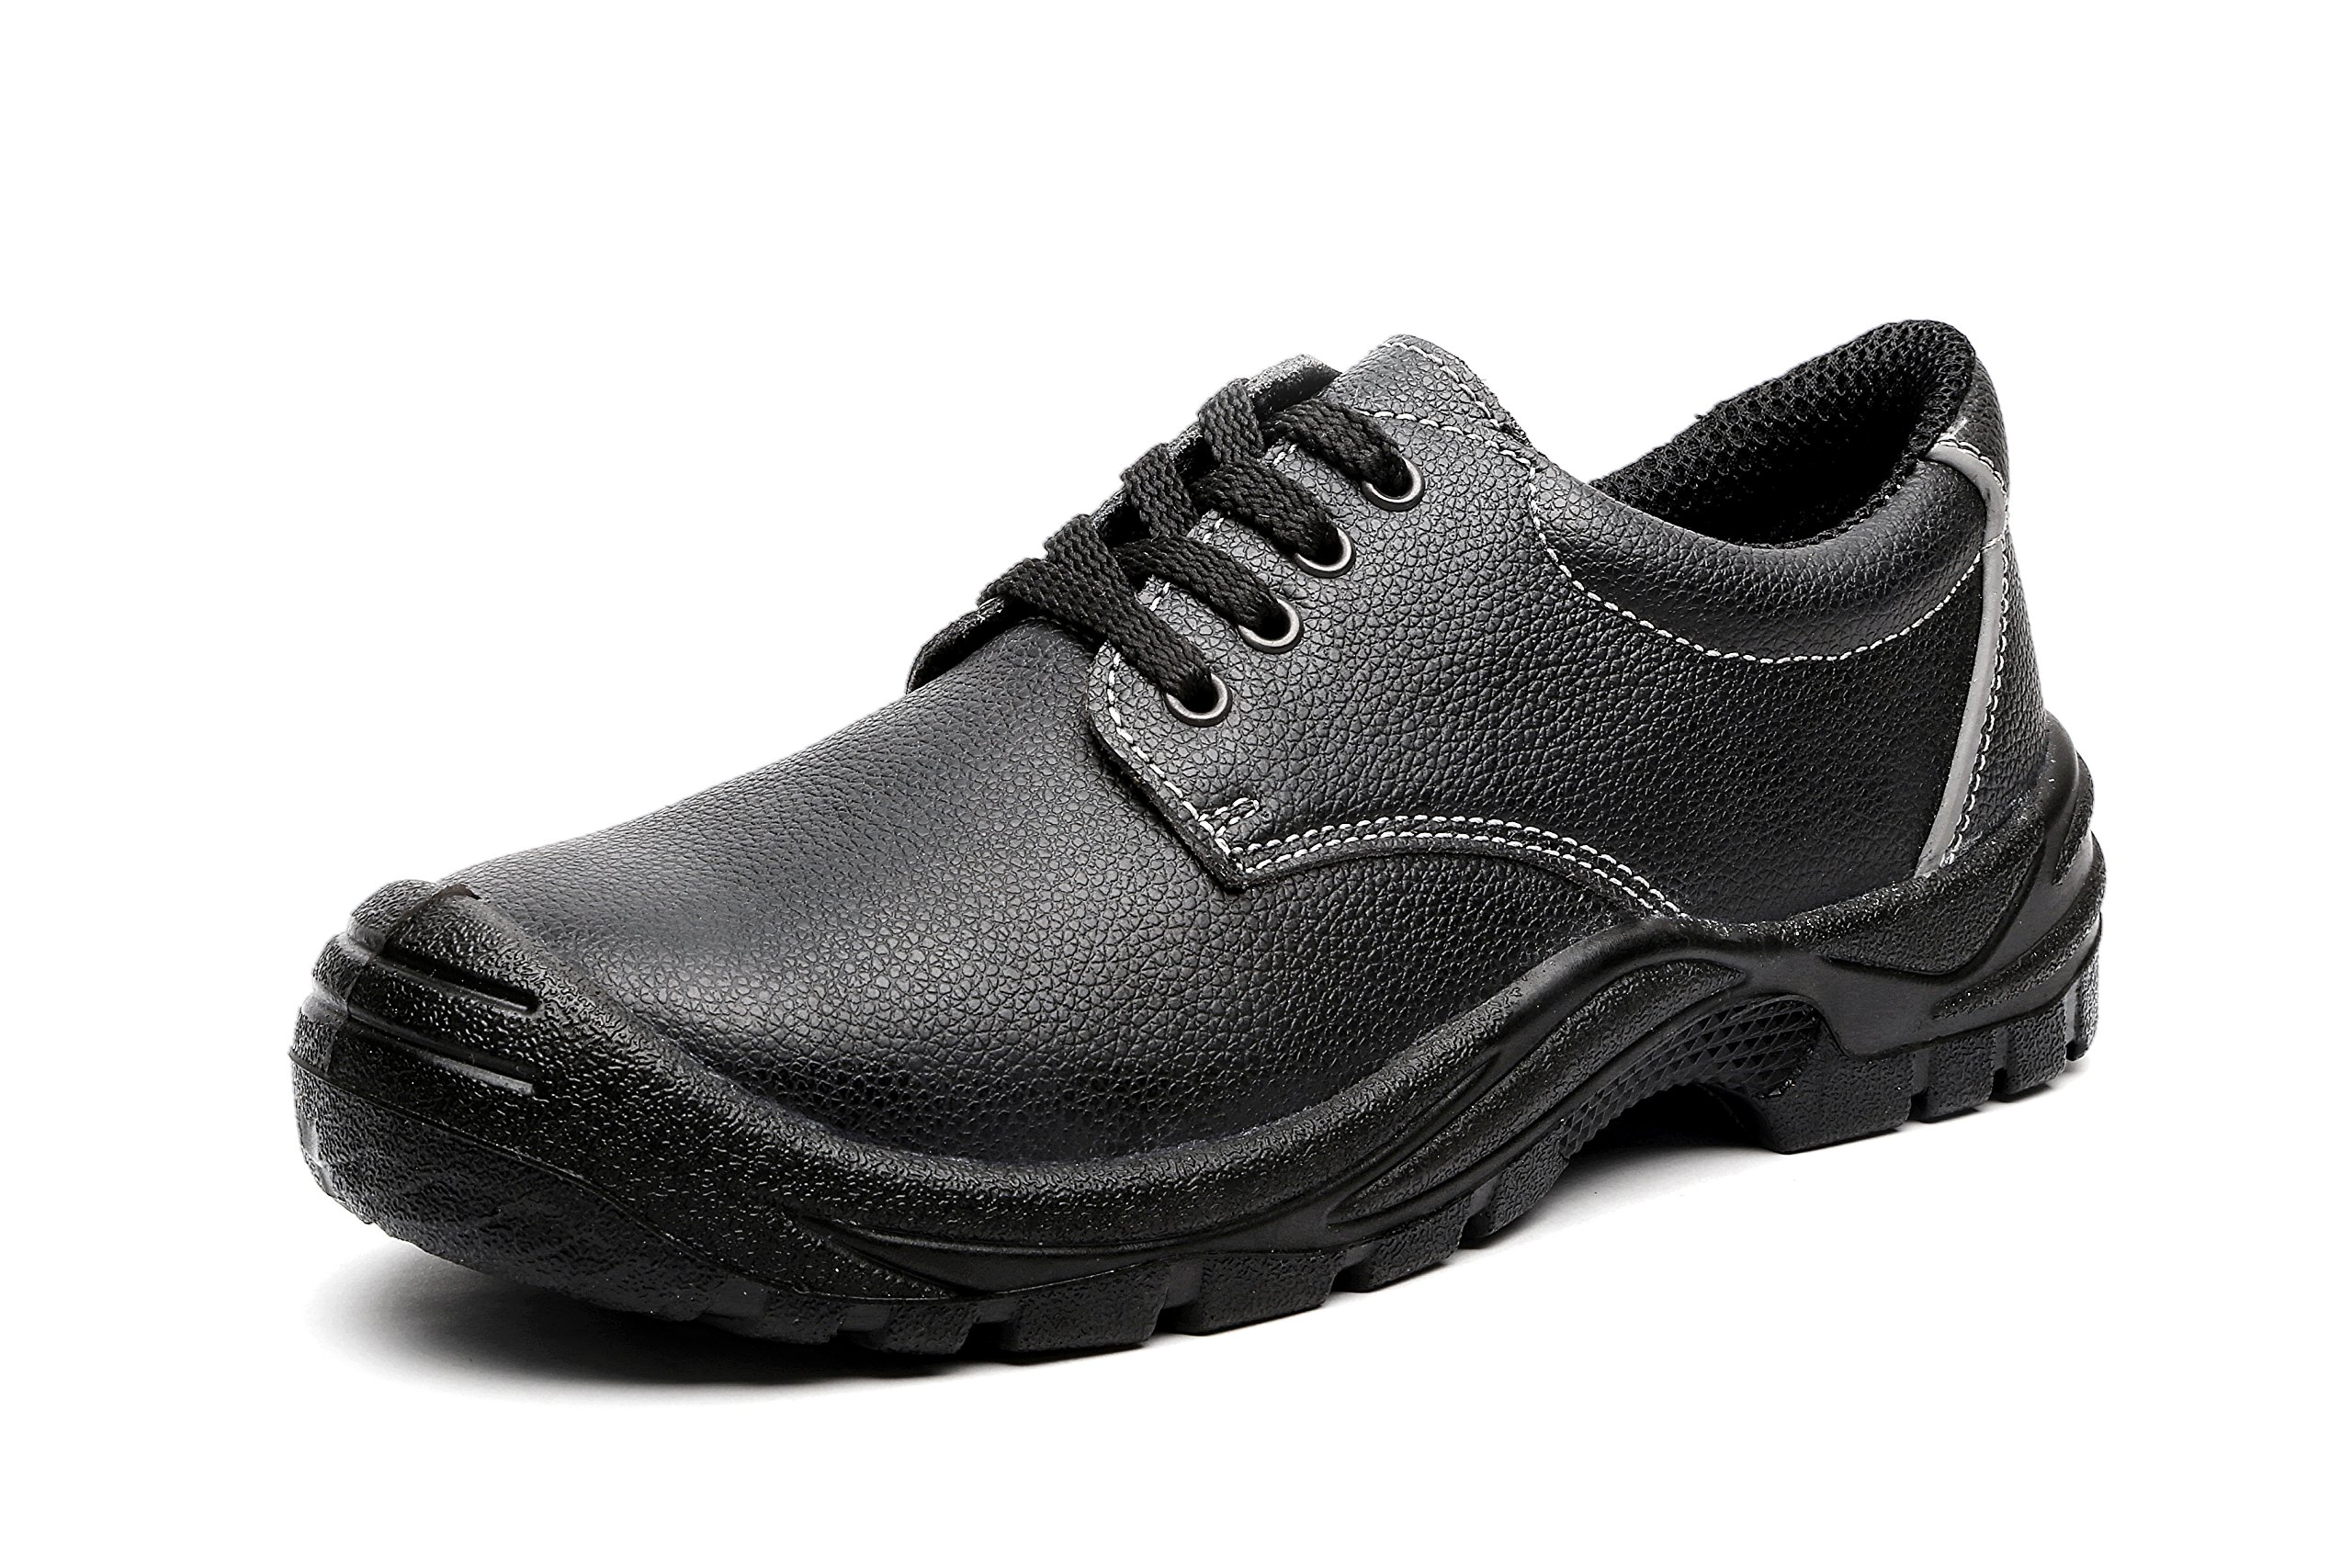 JACKBAGGIO Men's Steel Toe Steel Plate Leather Ultra-Cushioning Black Work Shoes (9)